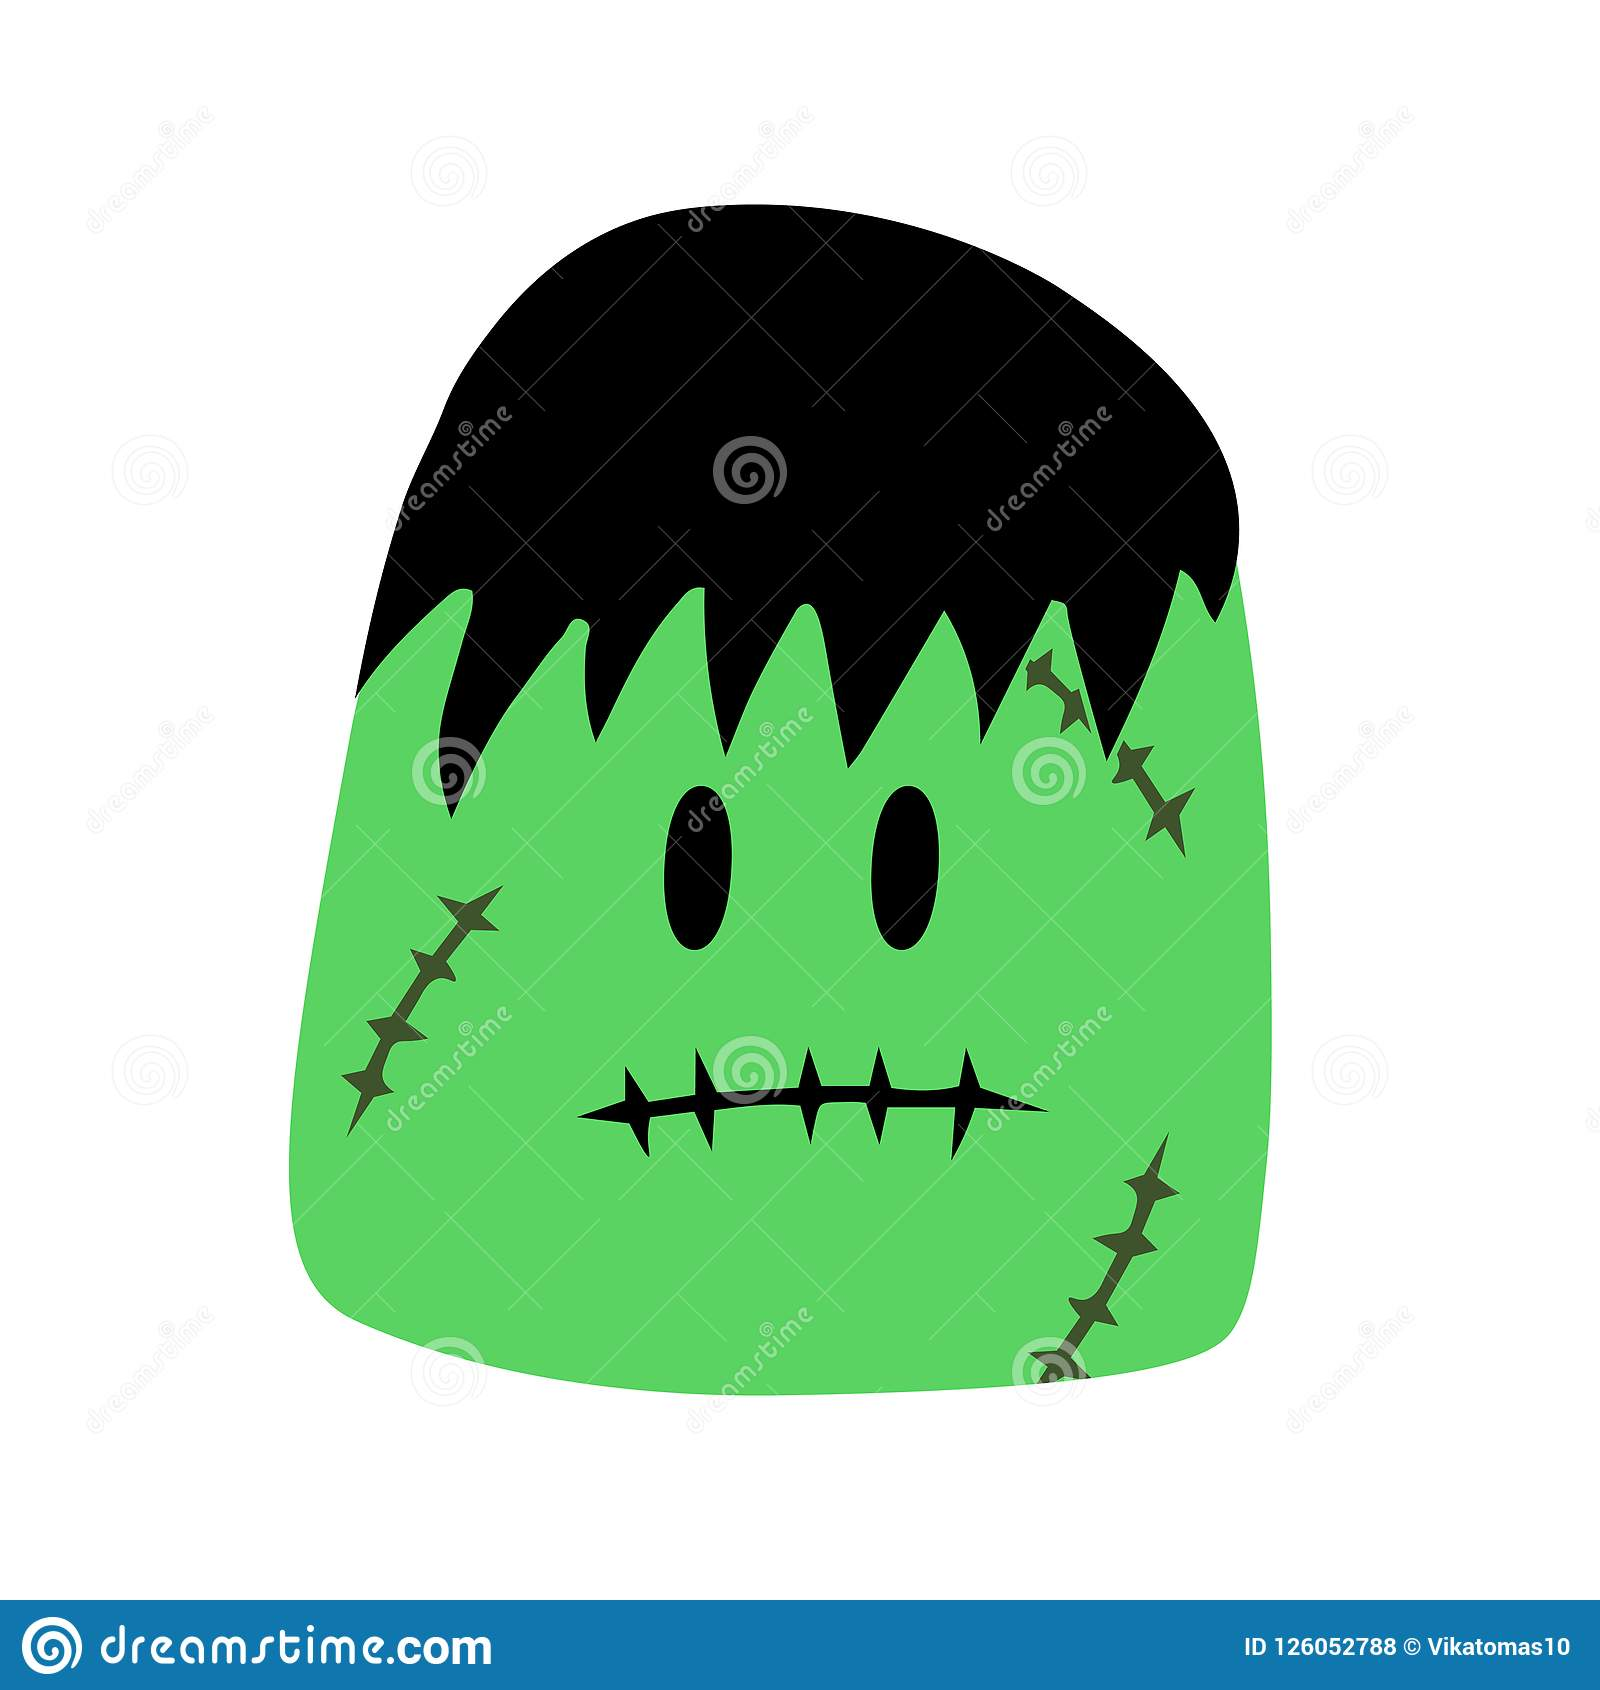 Frankenstein Cartoon Characters For Halloween,Wear Zombie